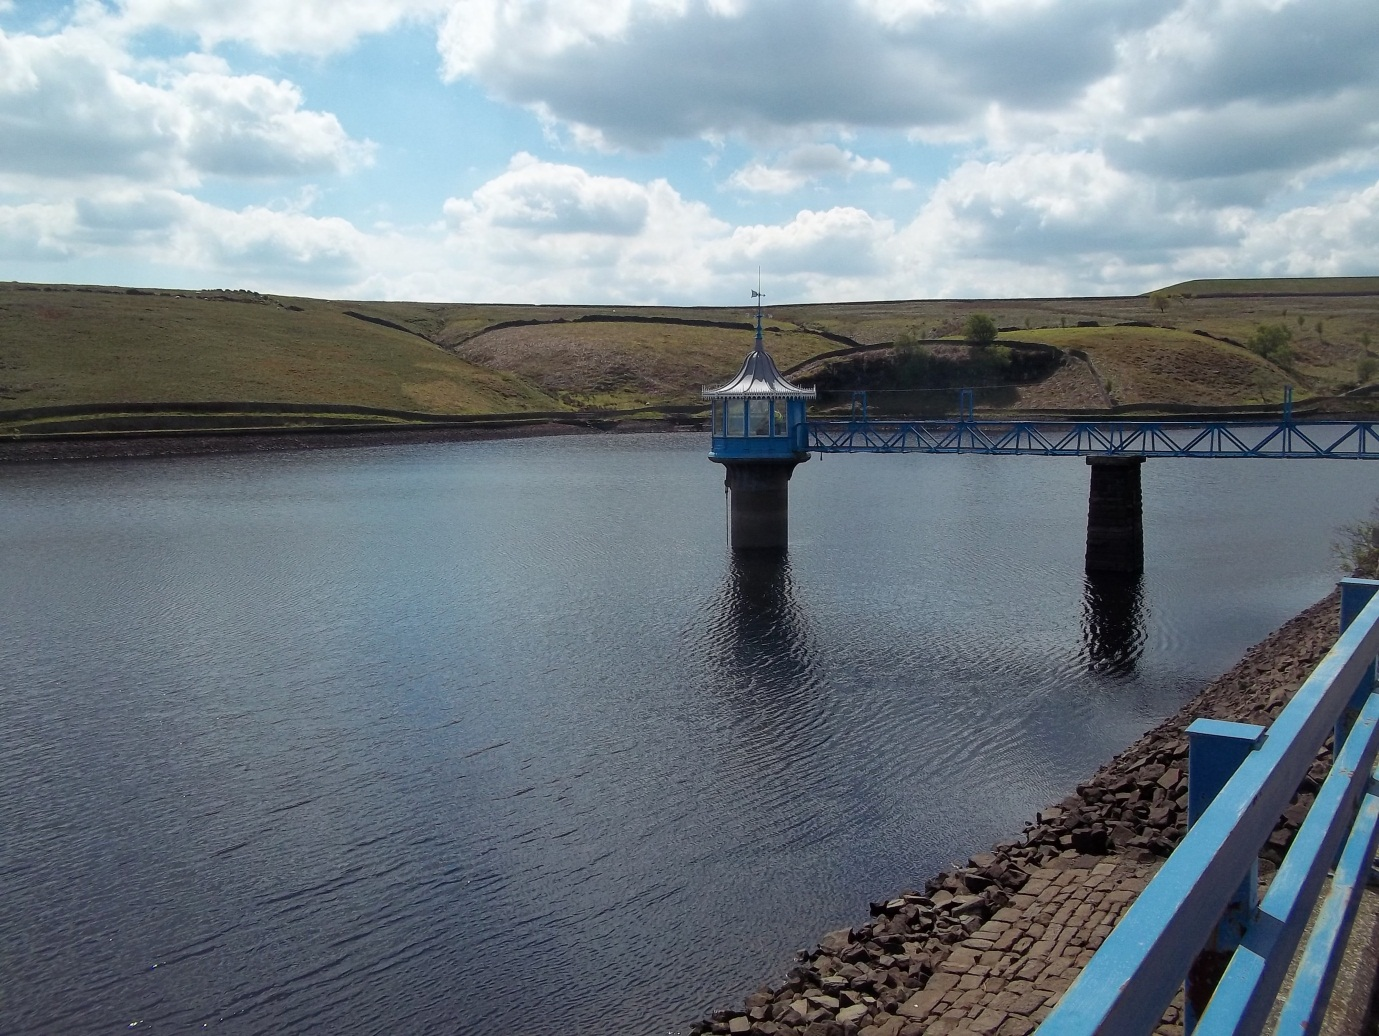 Stubden Reservoir Gets Some Improvements